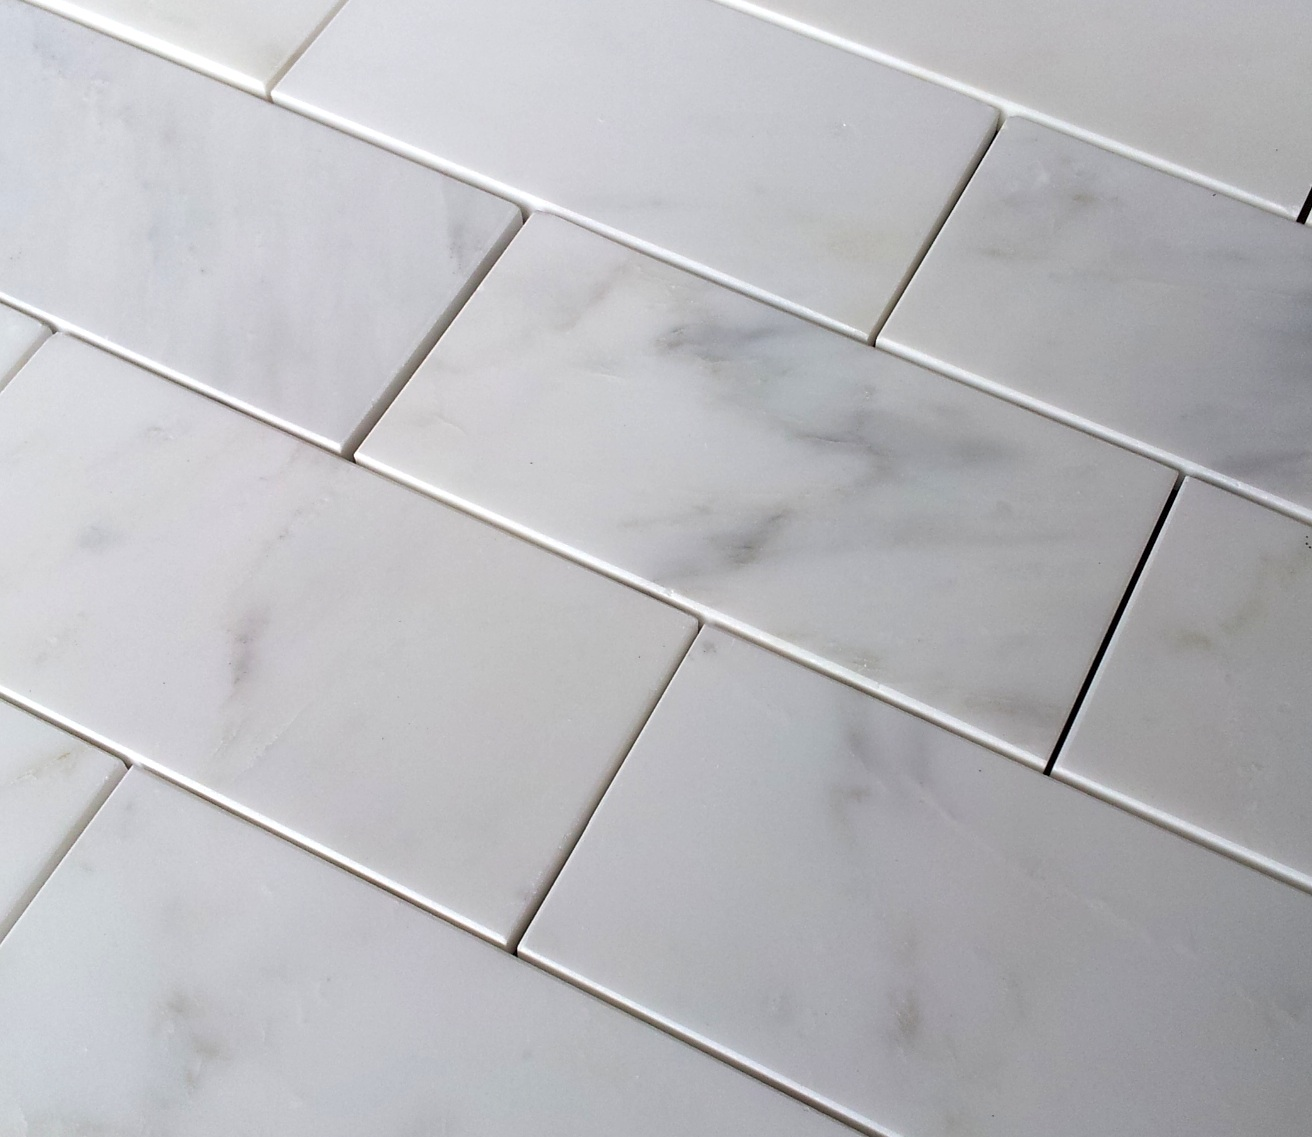 Carrara venato and bianco 36 subway tiles the builder depot blog carrara dailygadgetfo Image collections